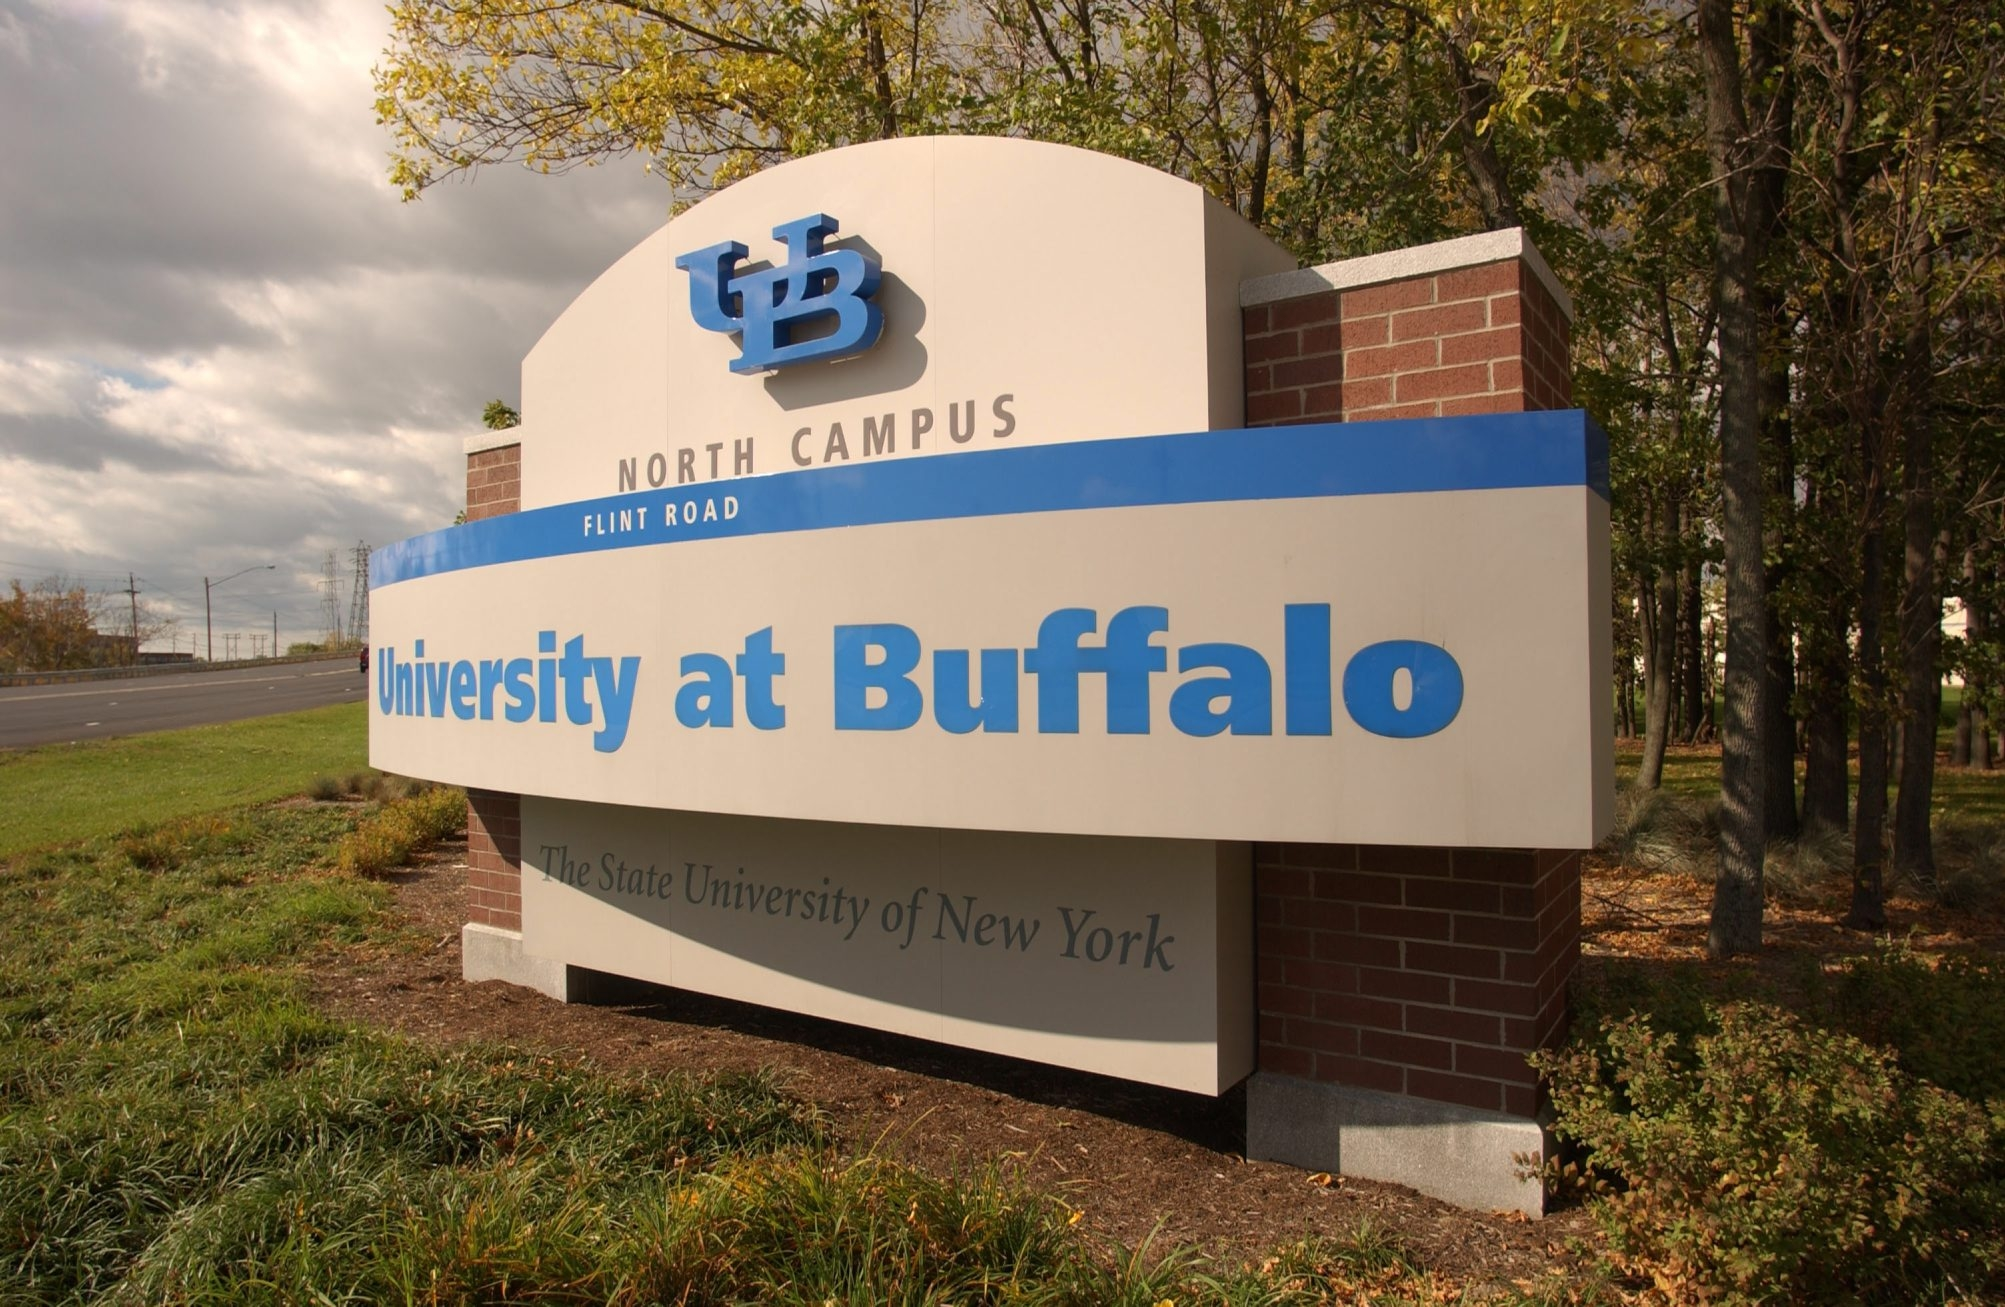 The University at Buffalo Foundation serves the university, but should be more open in its operations. (Robert Kirkham/Buffalo News file photo)